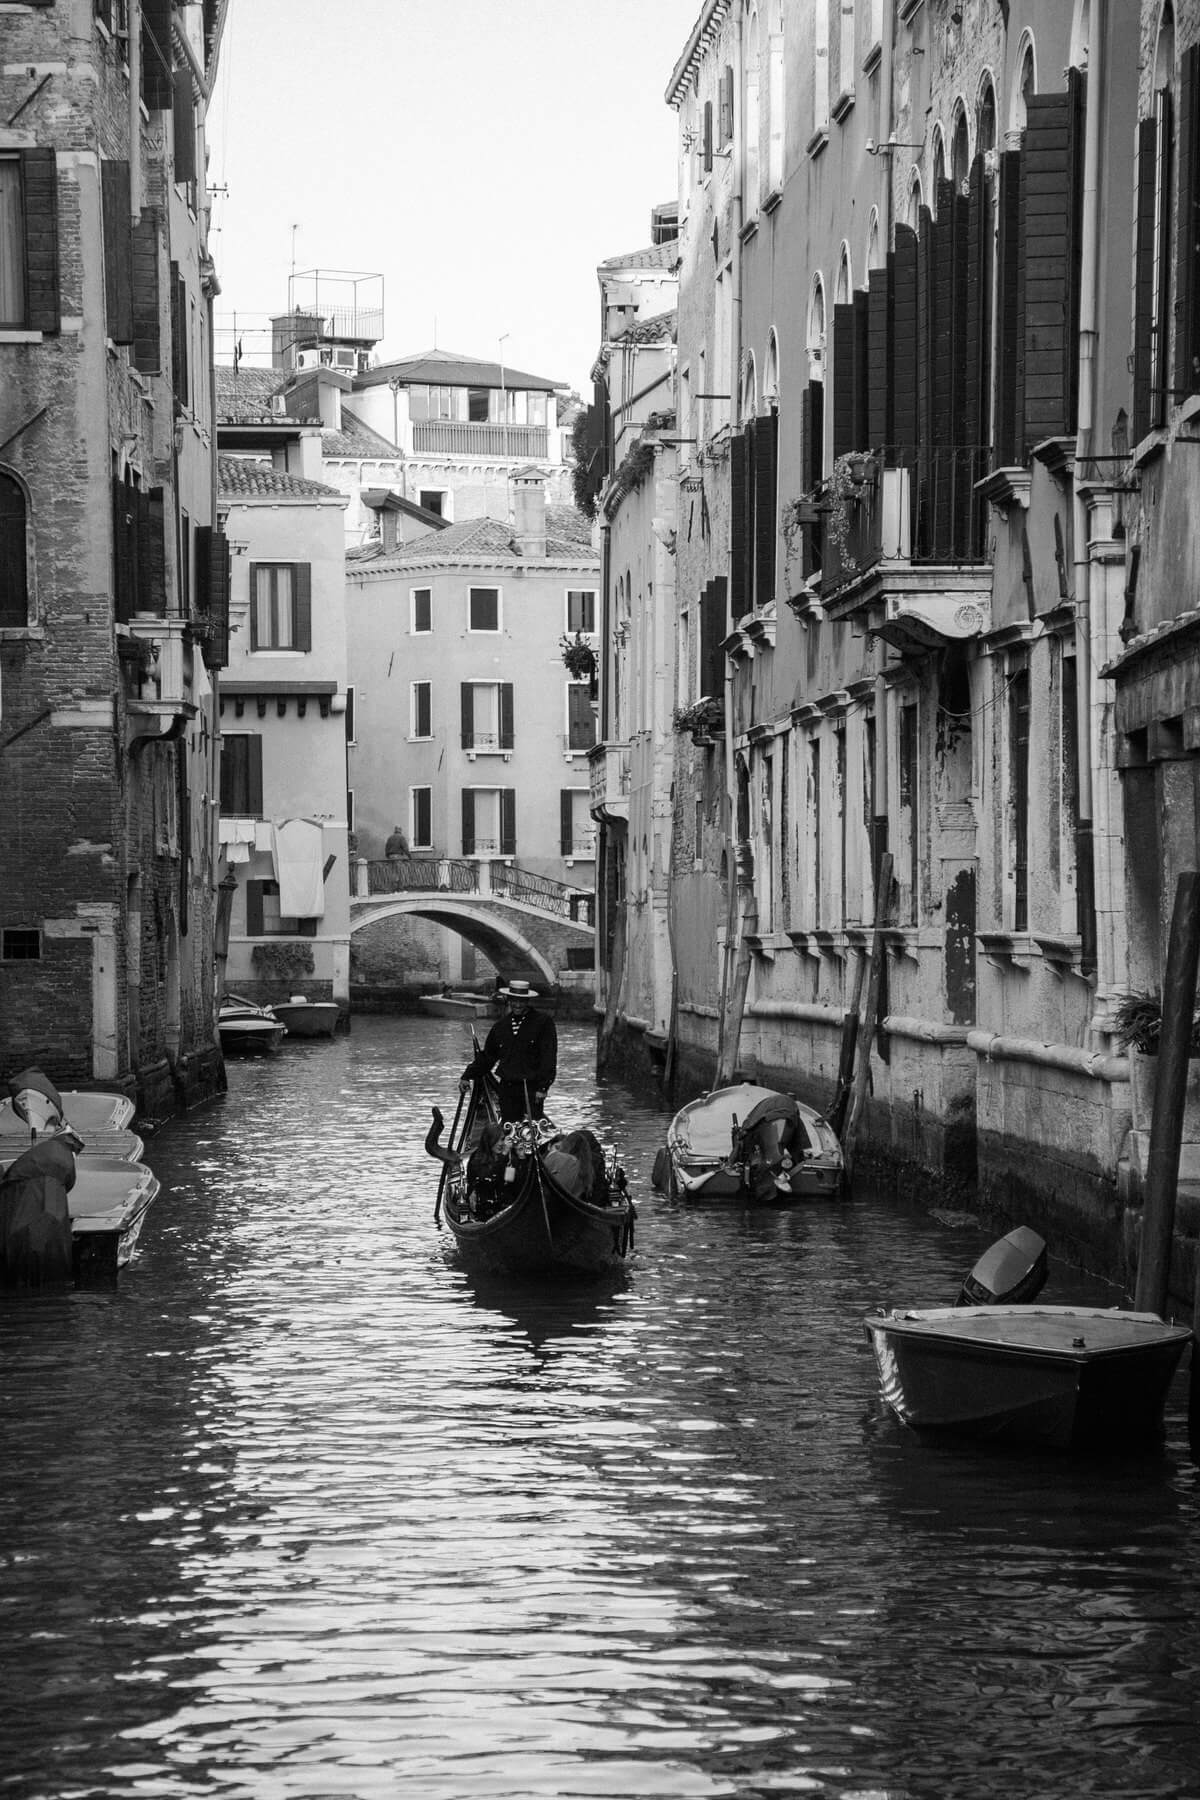 Venice-Italy-black-and-white-fine-art-photography-by-Studio-L-photographer-Laura-Schneider-_3850